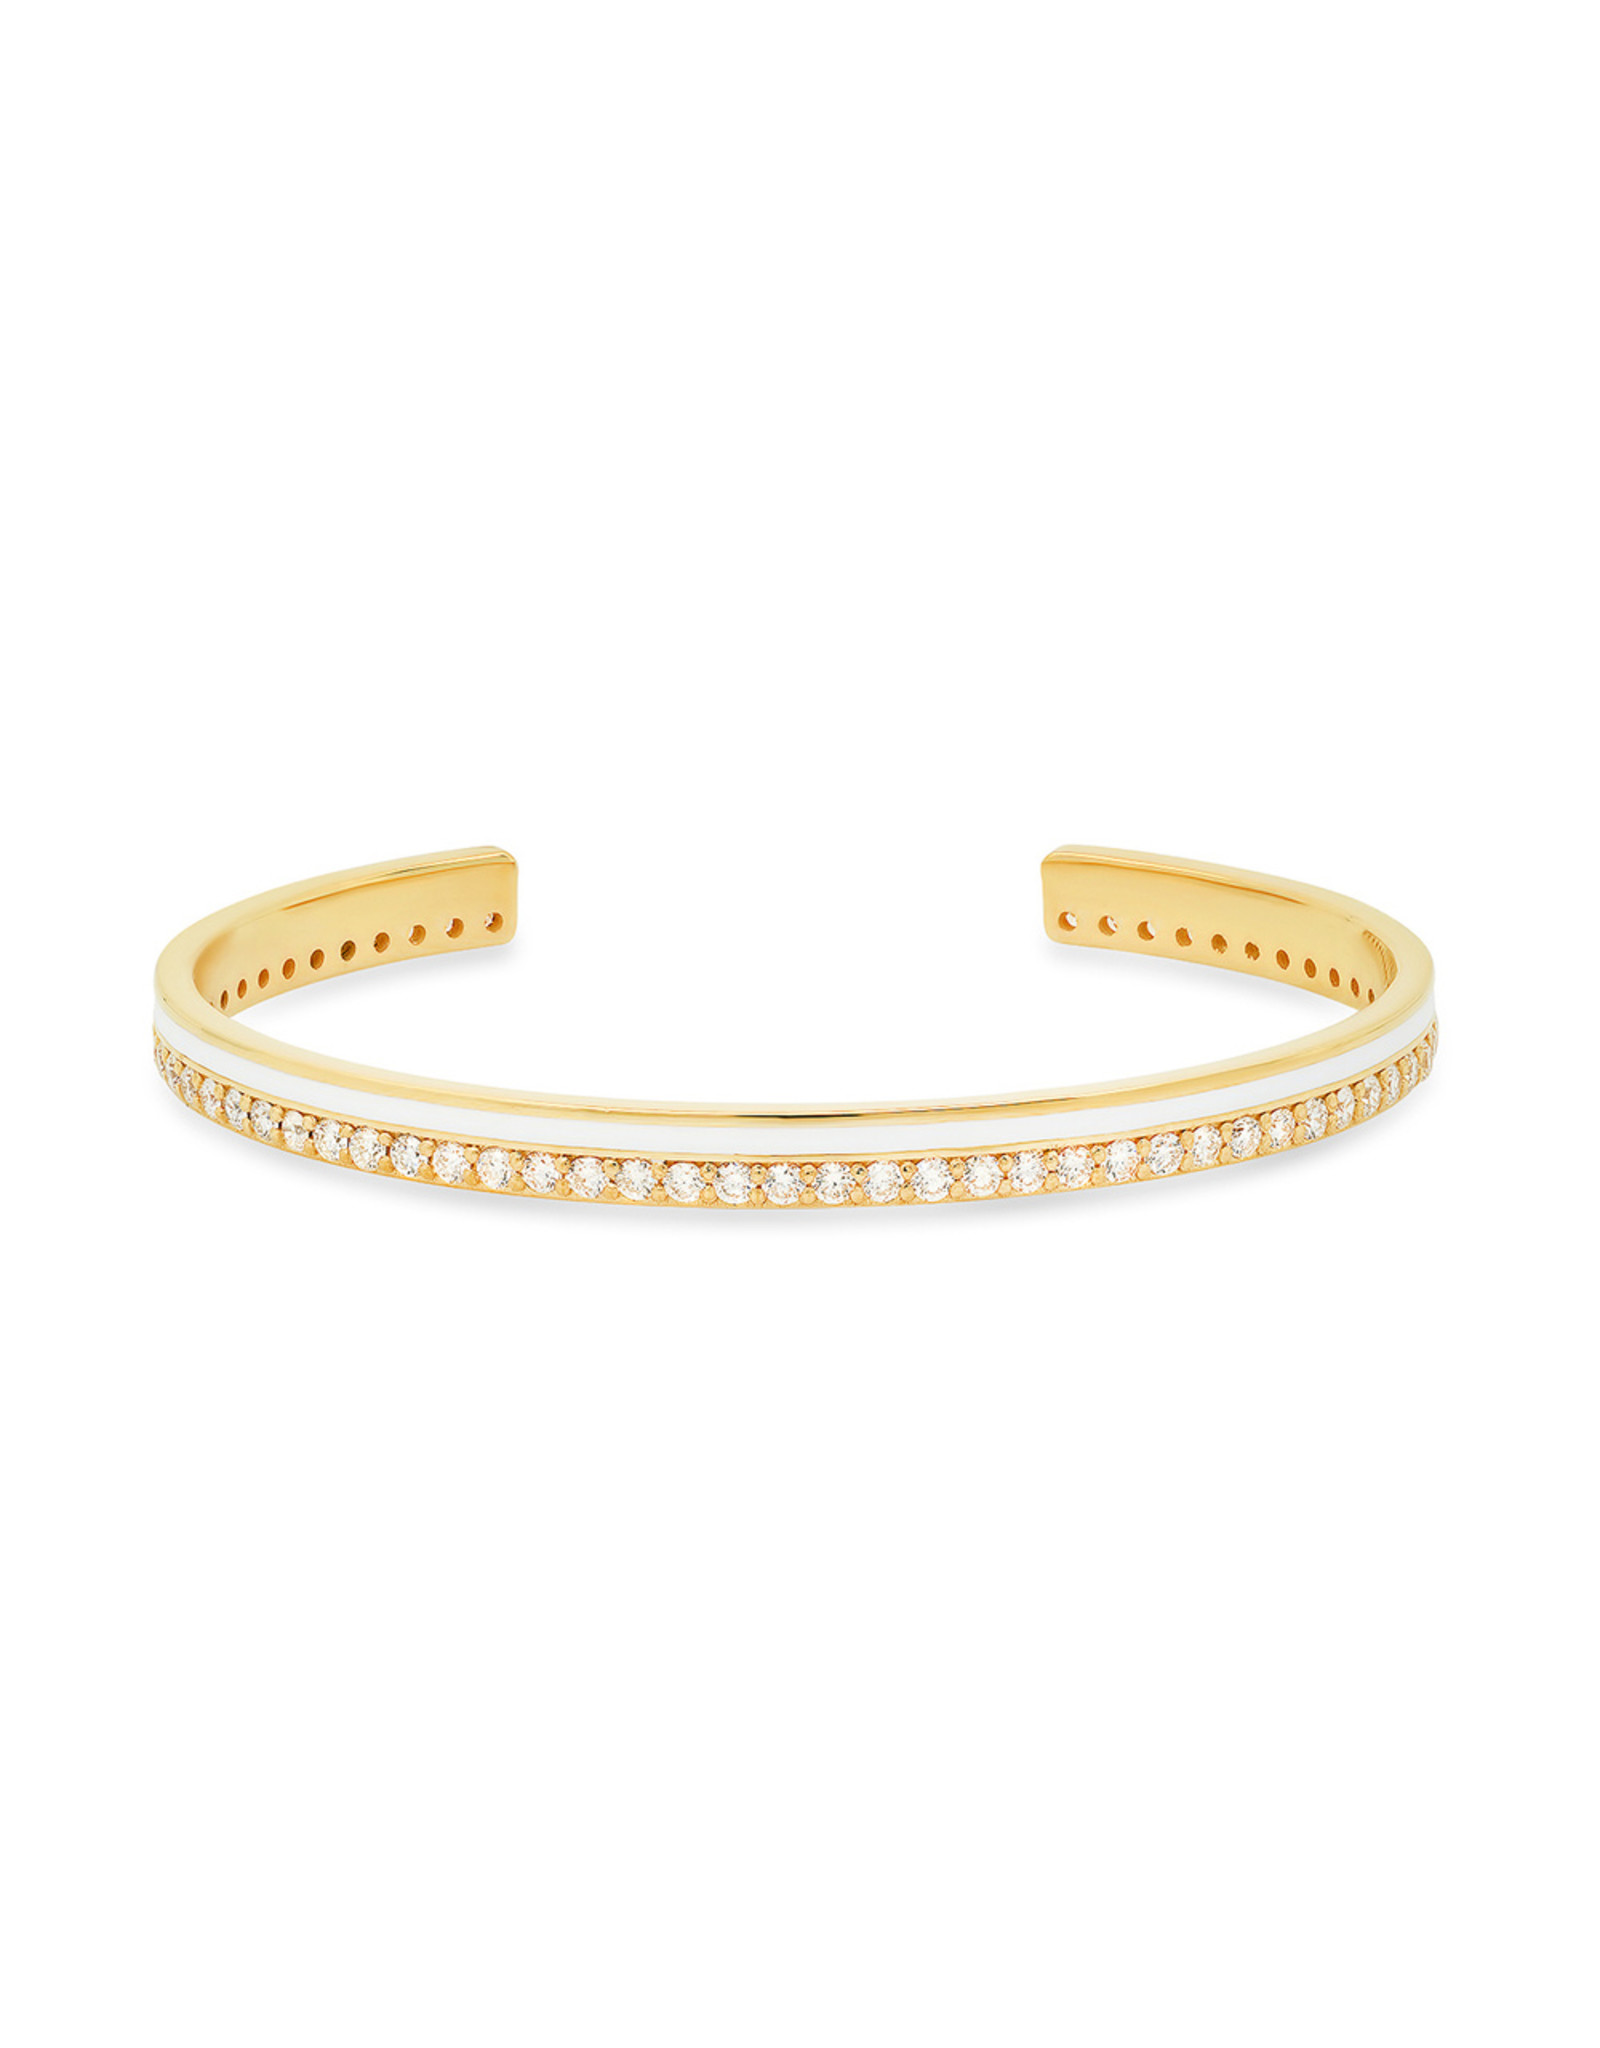 Colette Jewelry Colette Galaxia White Bracelet (Color: Yellow Gold / White)